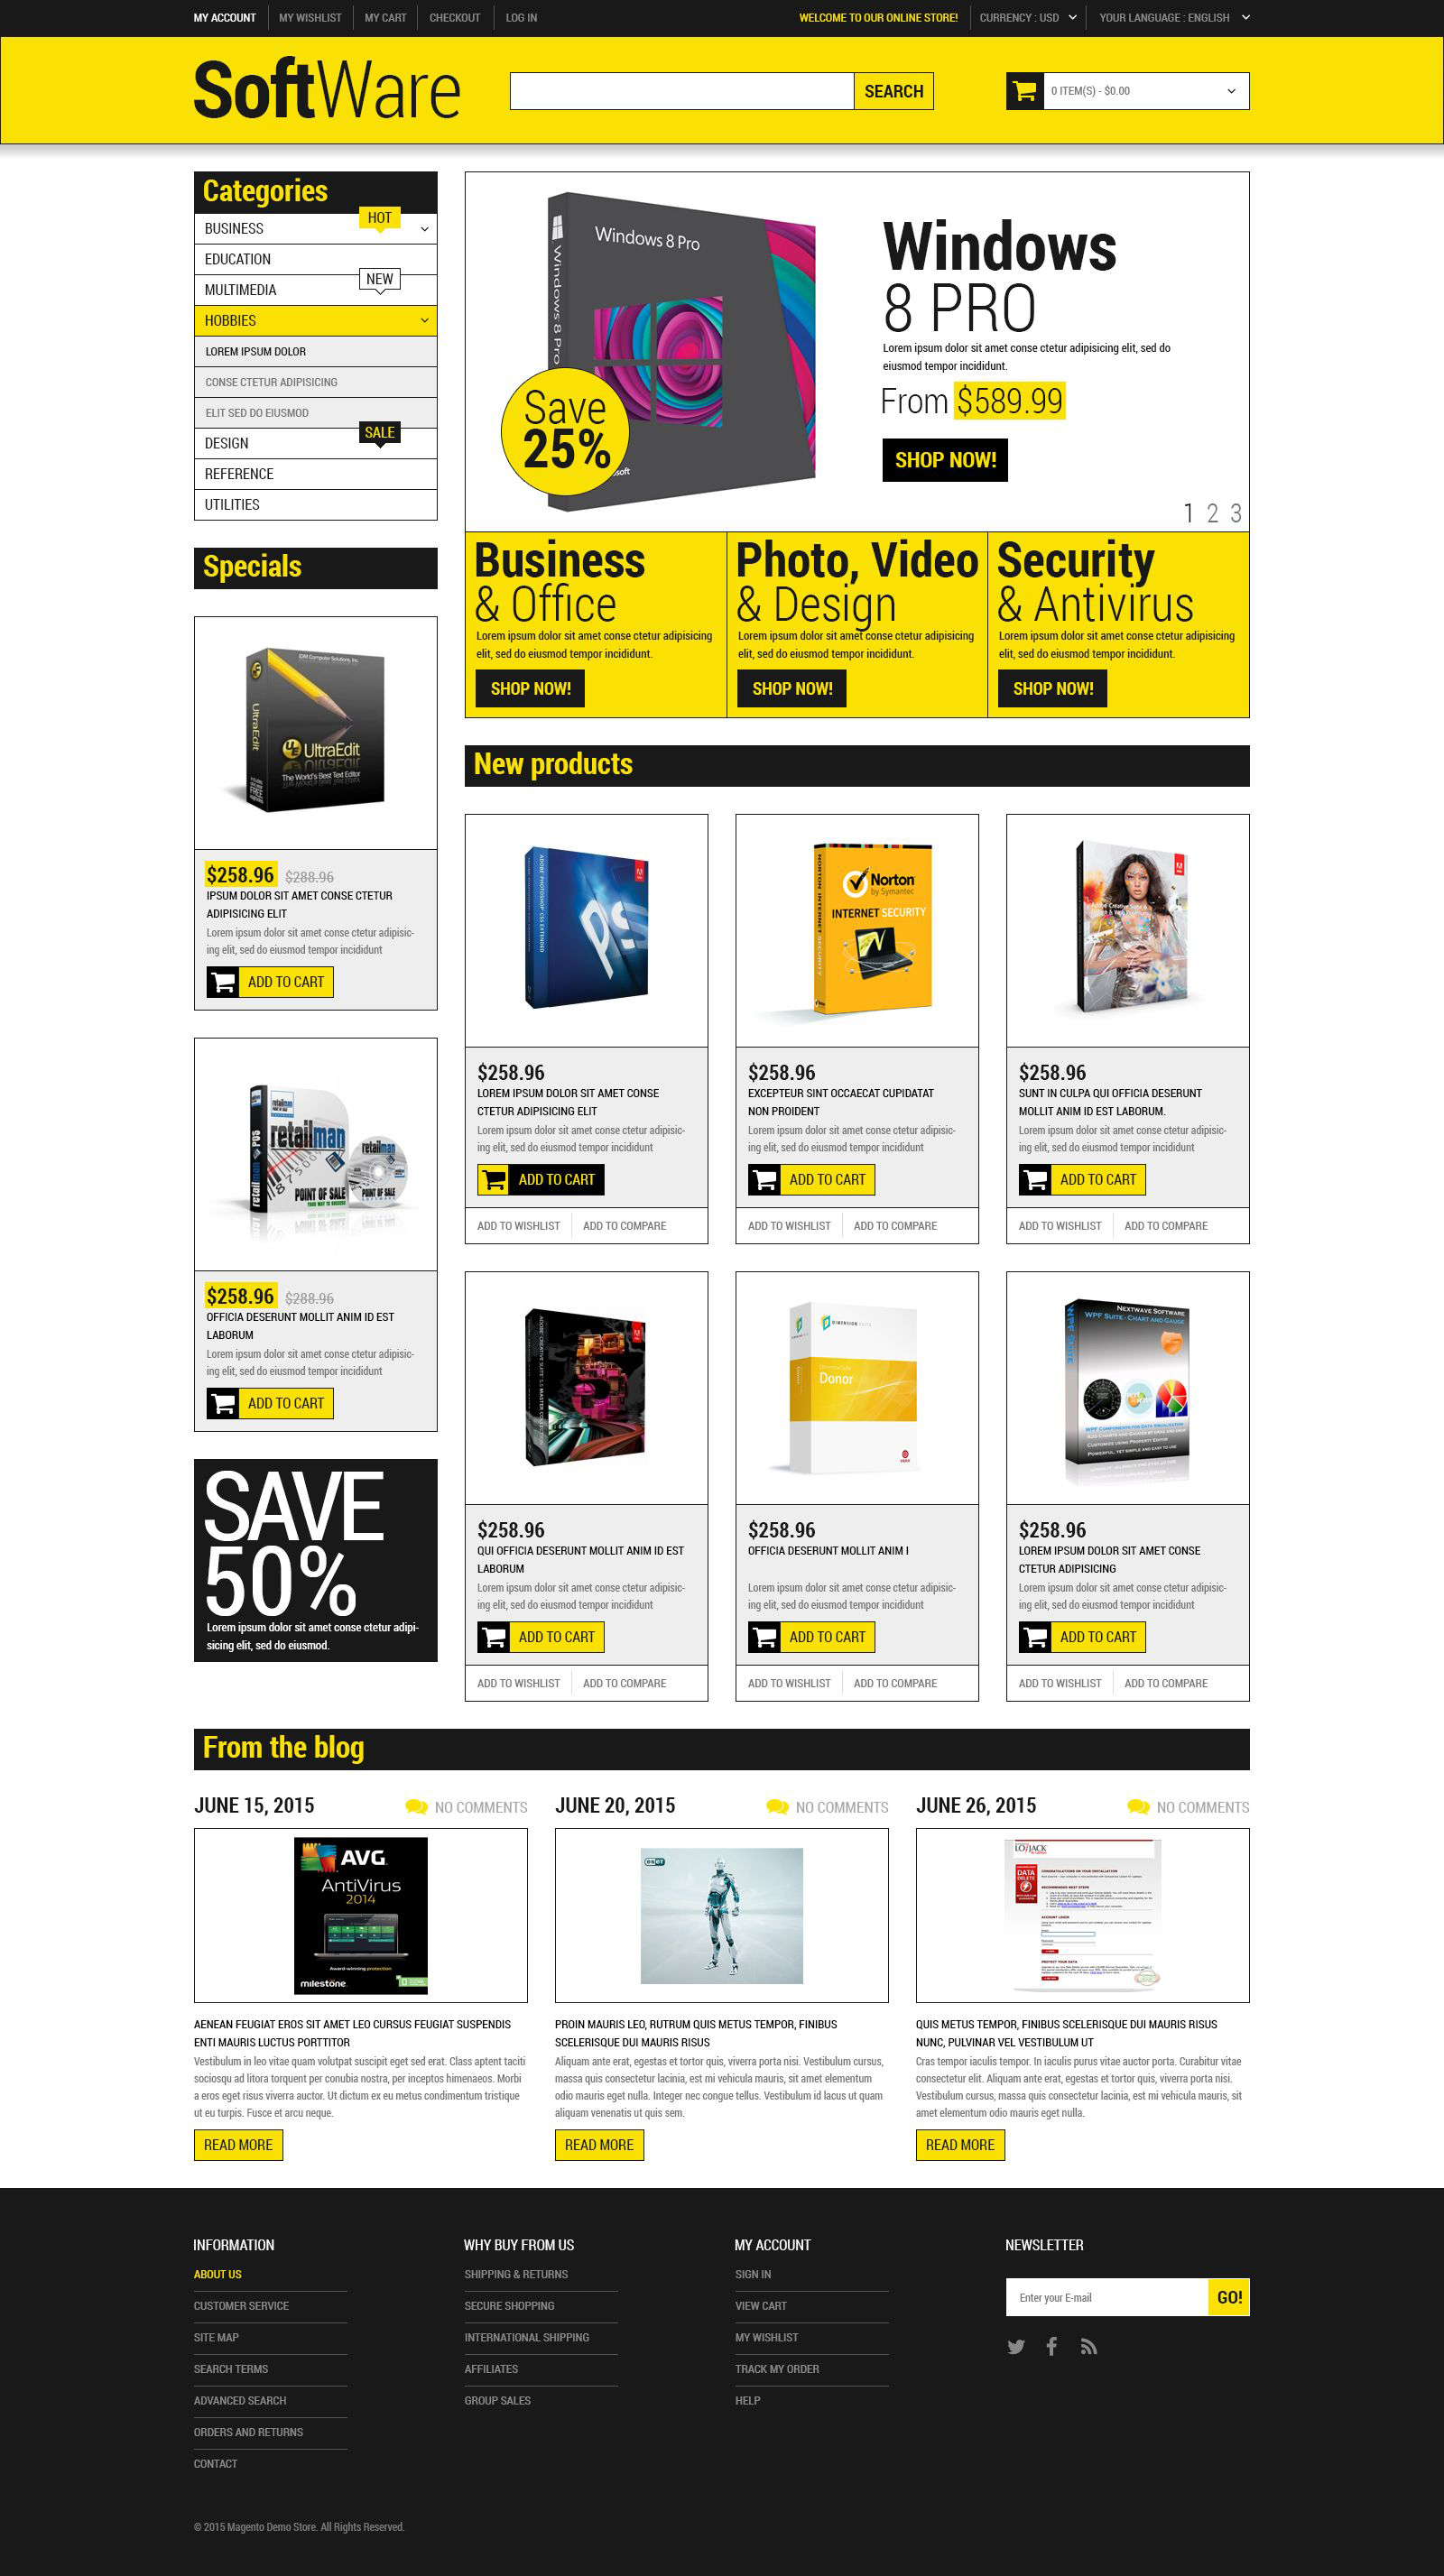 The Software Web Development Magento Design 53175, one of the best Magento themes of its kind (software, most popular), also known as software web development Magento template, webmasters Magento template, designers Magento template, internet Magento template, www Magento template, sites Magento template, web design Magento template, webpage Magento template, internet Magento template, aps and related with software web development, webmasters, designers, internet, www, sites, web design, webpage, internet, aps, etc.